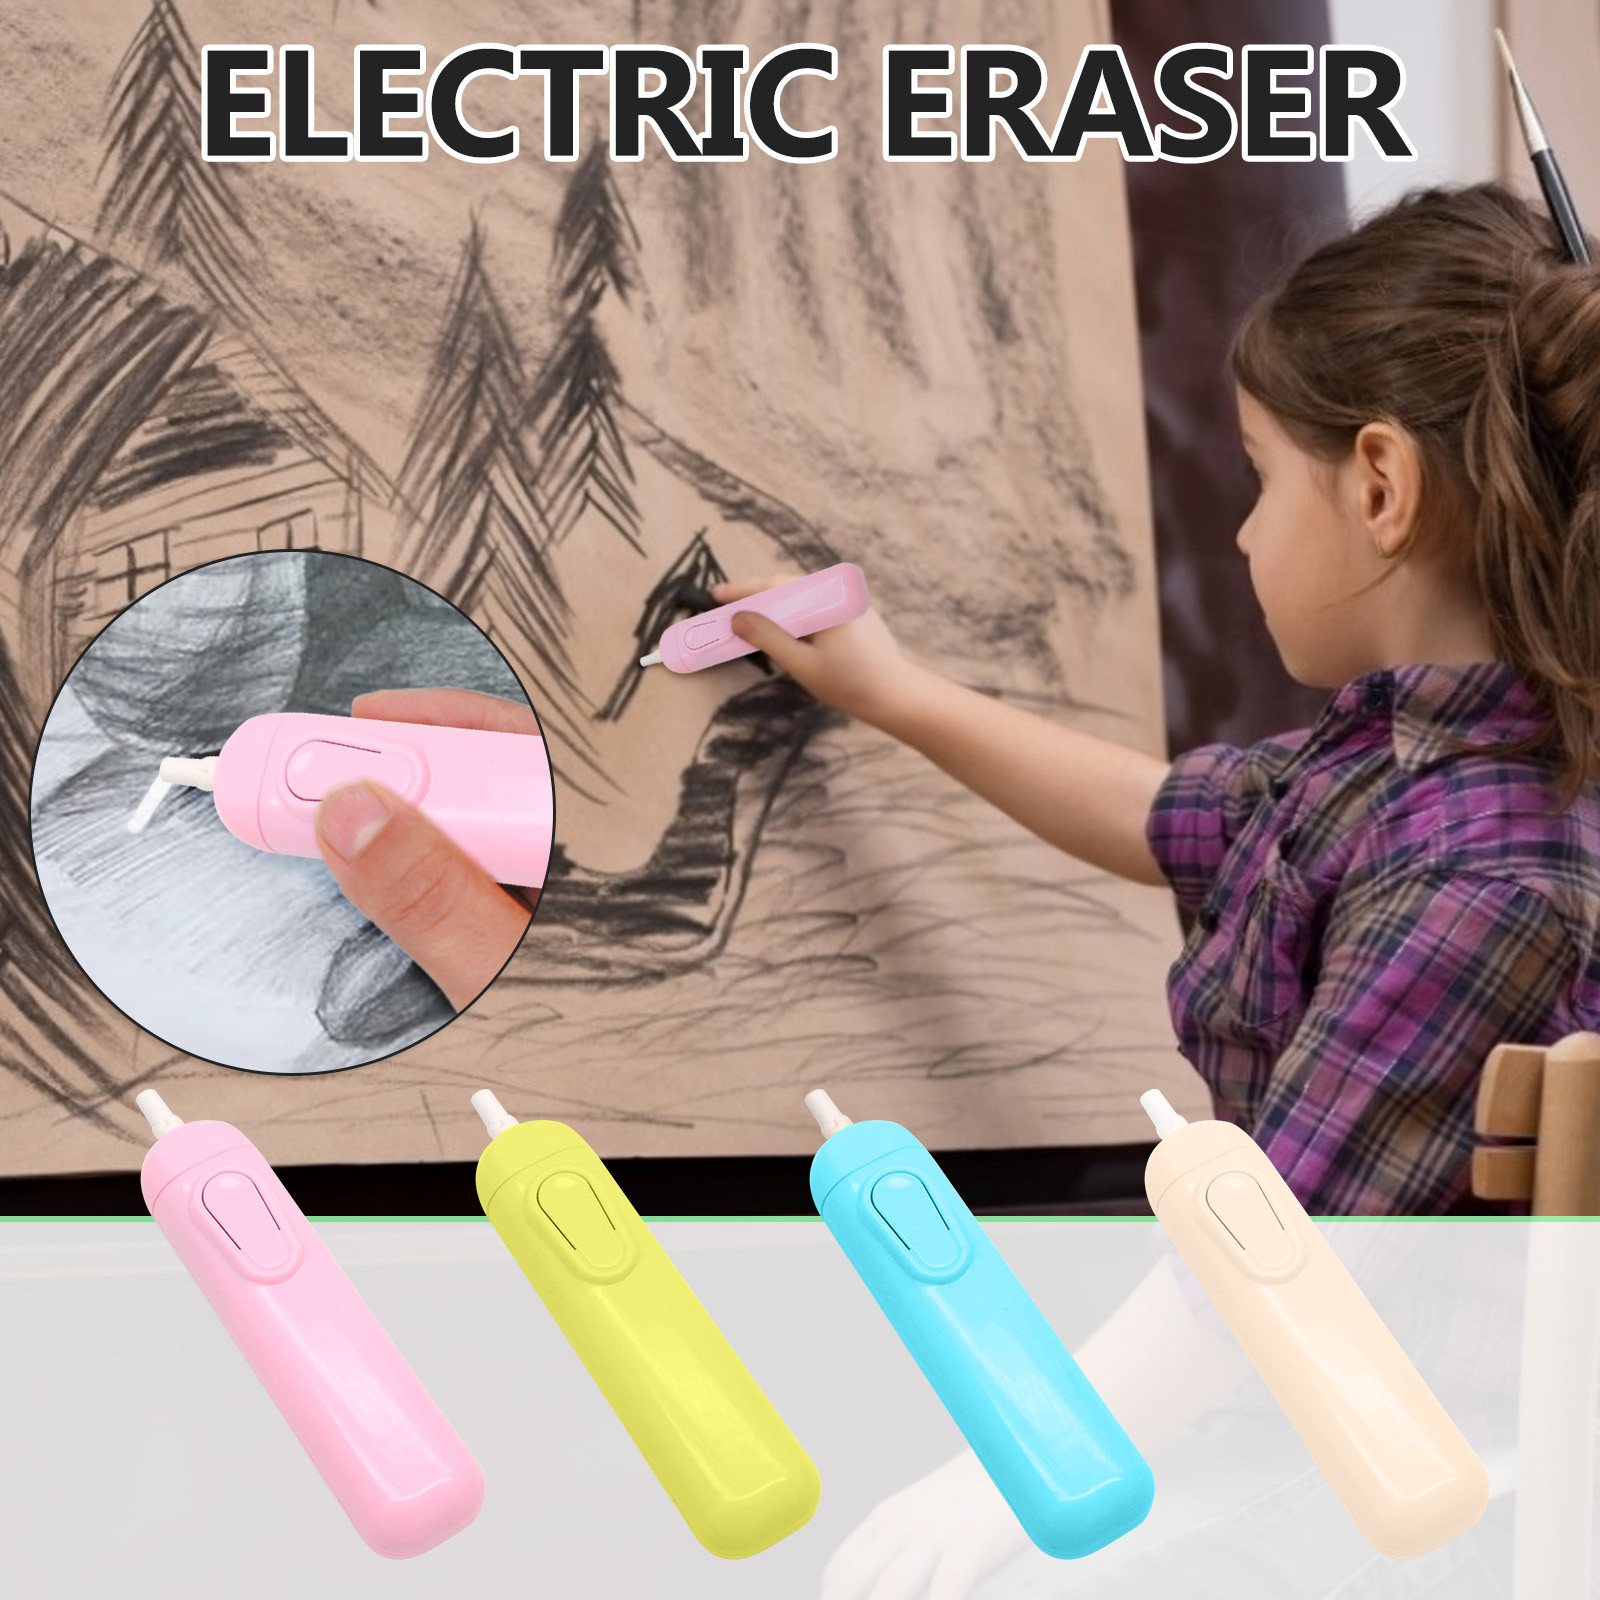 Sketch Highlight Electric Eraser Children's Drawing Writing Electric Eraser Battery Operated Eraser Electric Erase 19.2x18x2cm